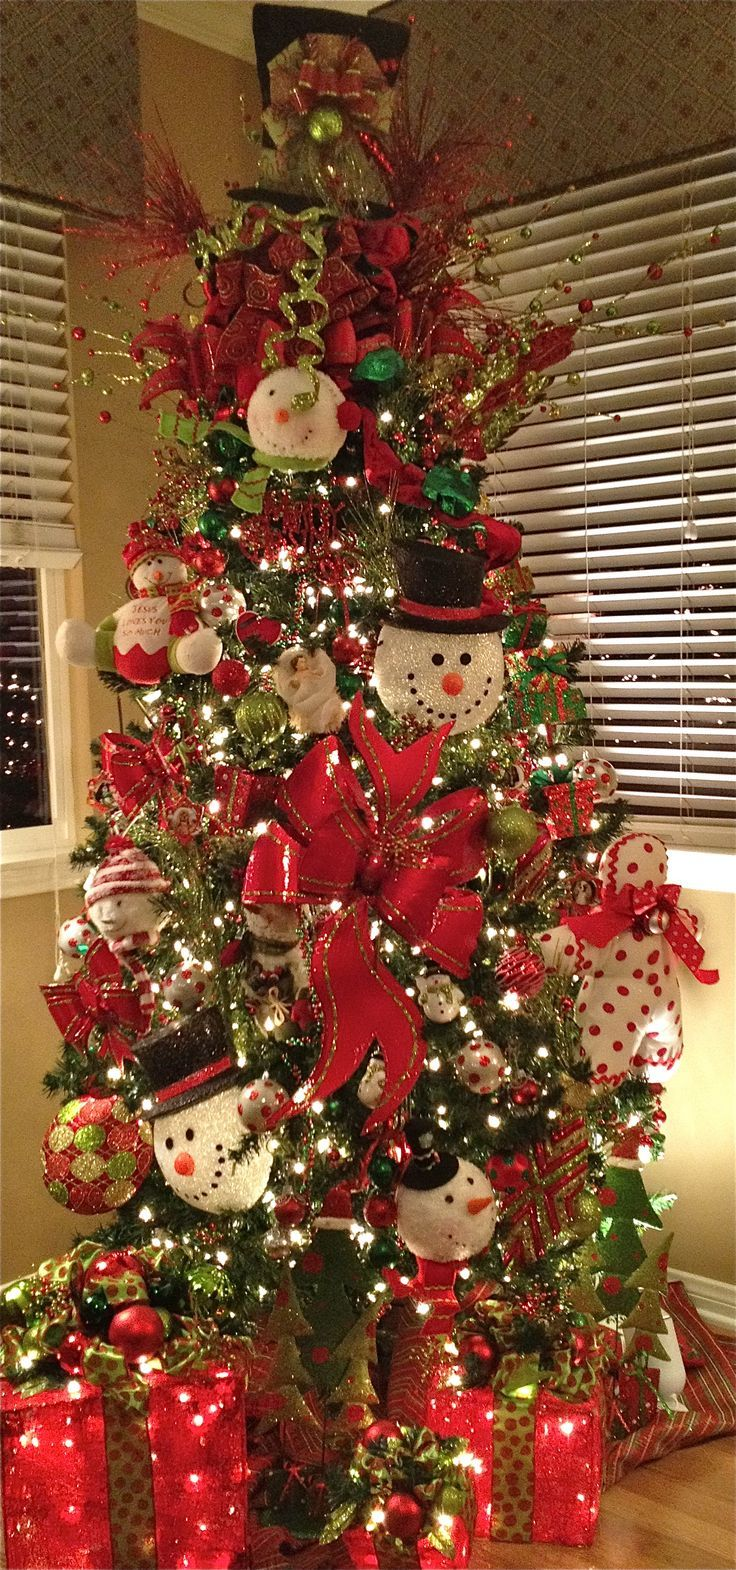 Christmas tree designs and decor ideas for 2014 15 for Design a christmas decoration